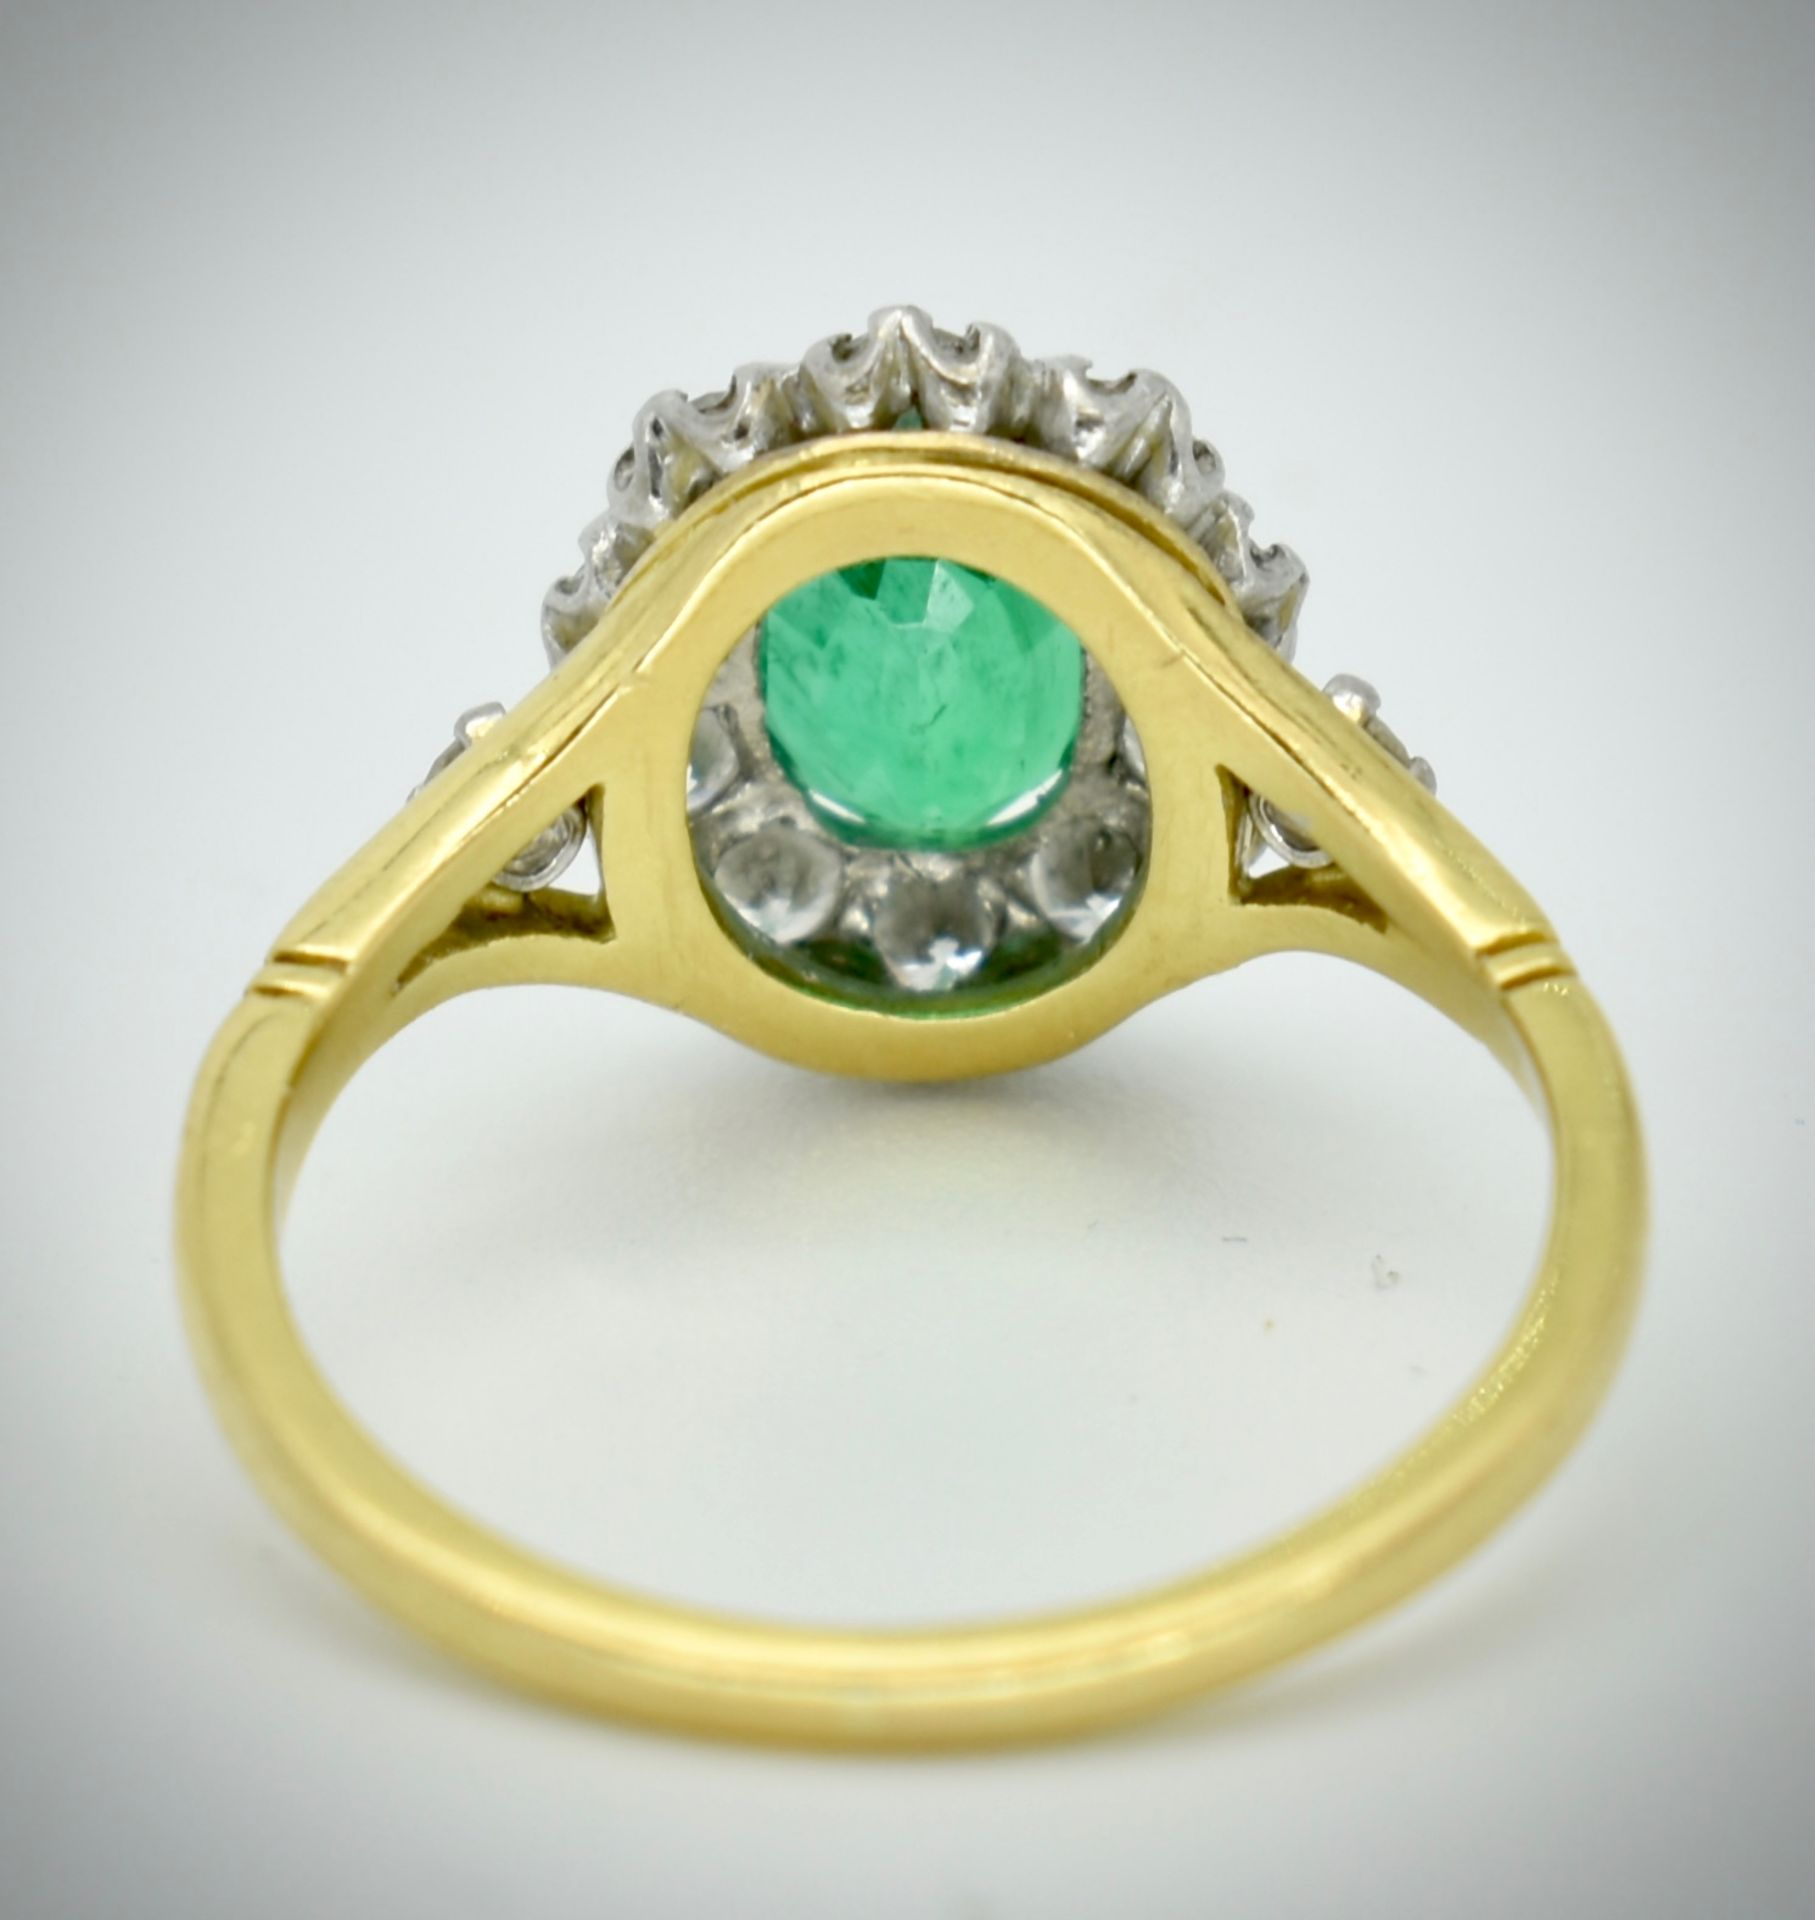 18ct Gold Emerald & Diamond Cluster Ring - Image 2 of 2